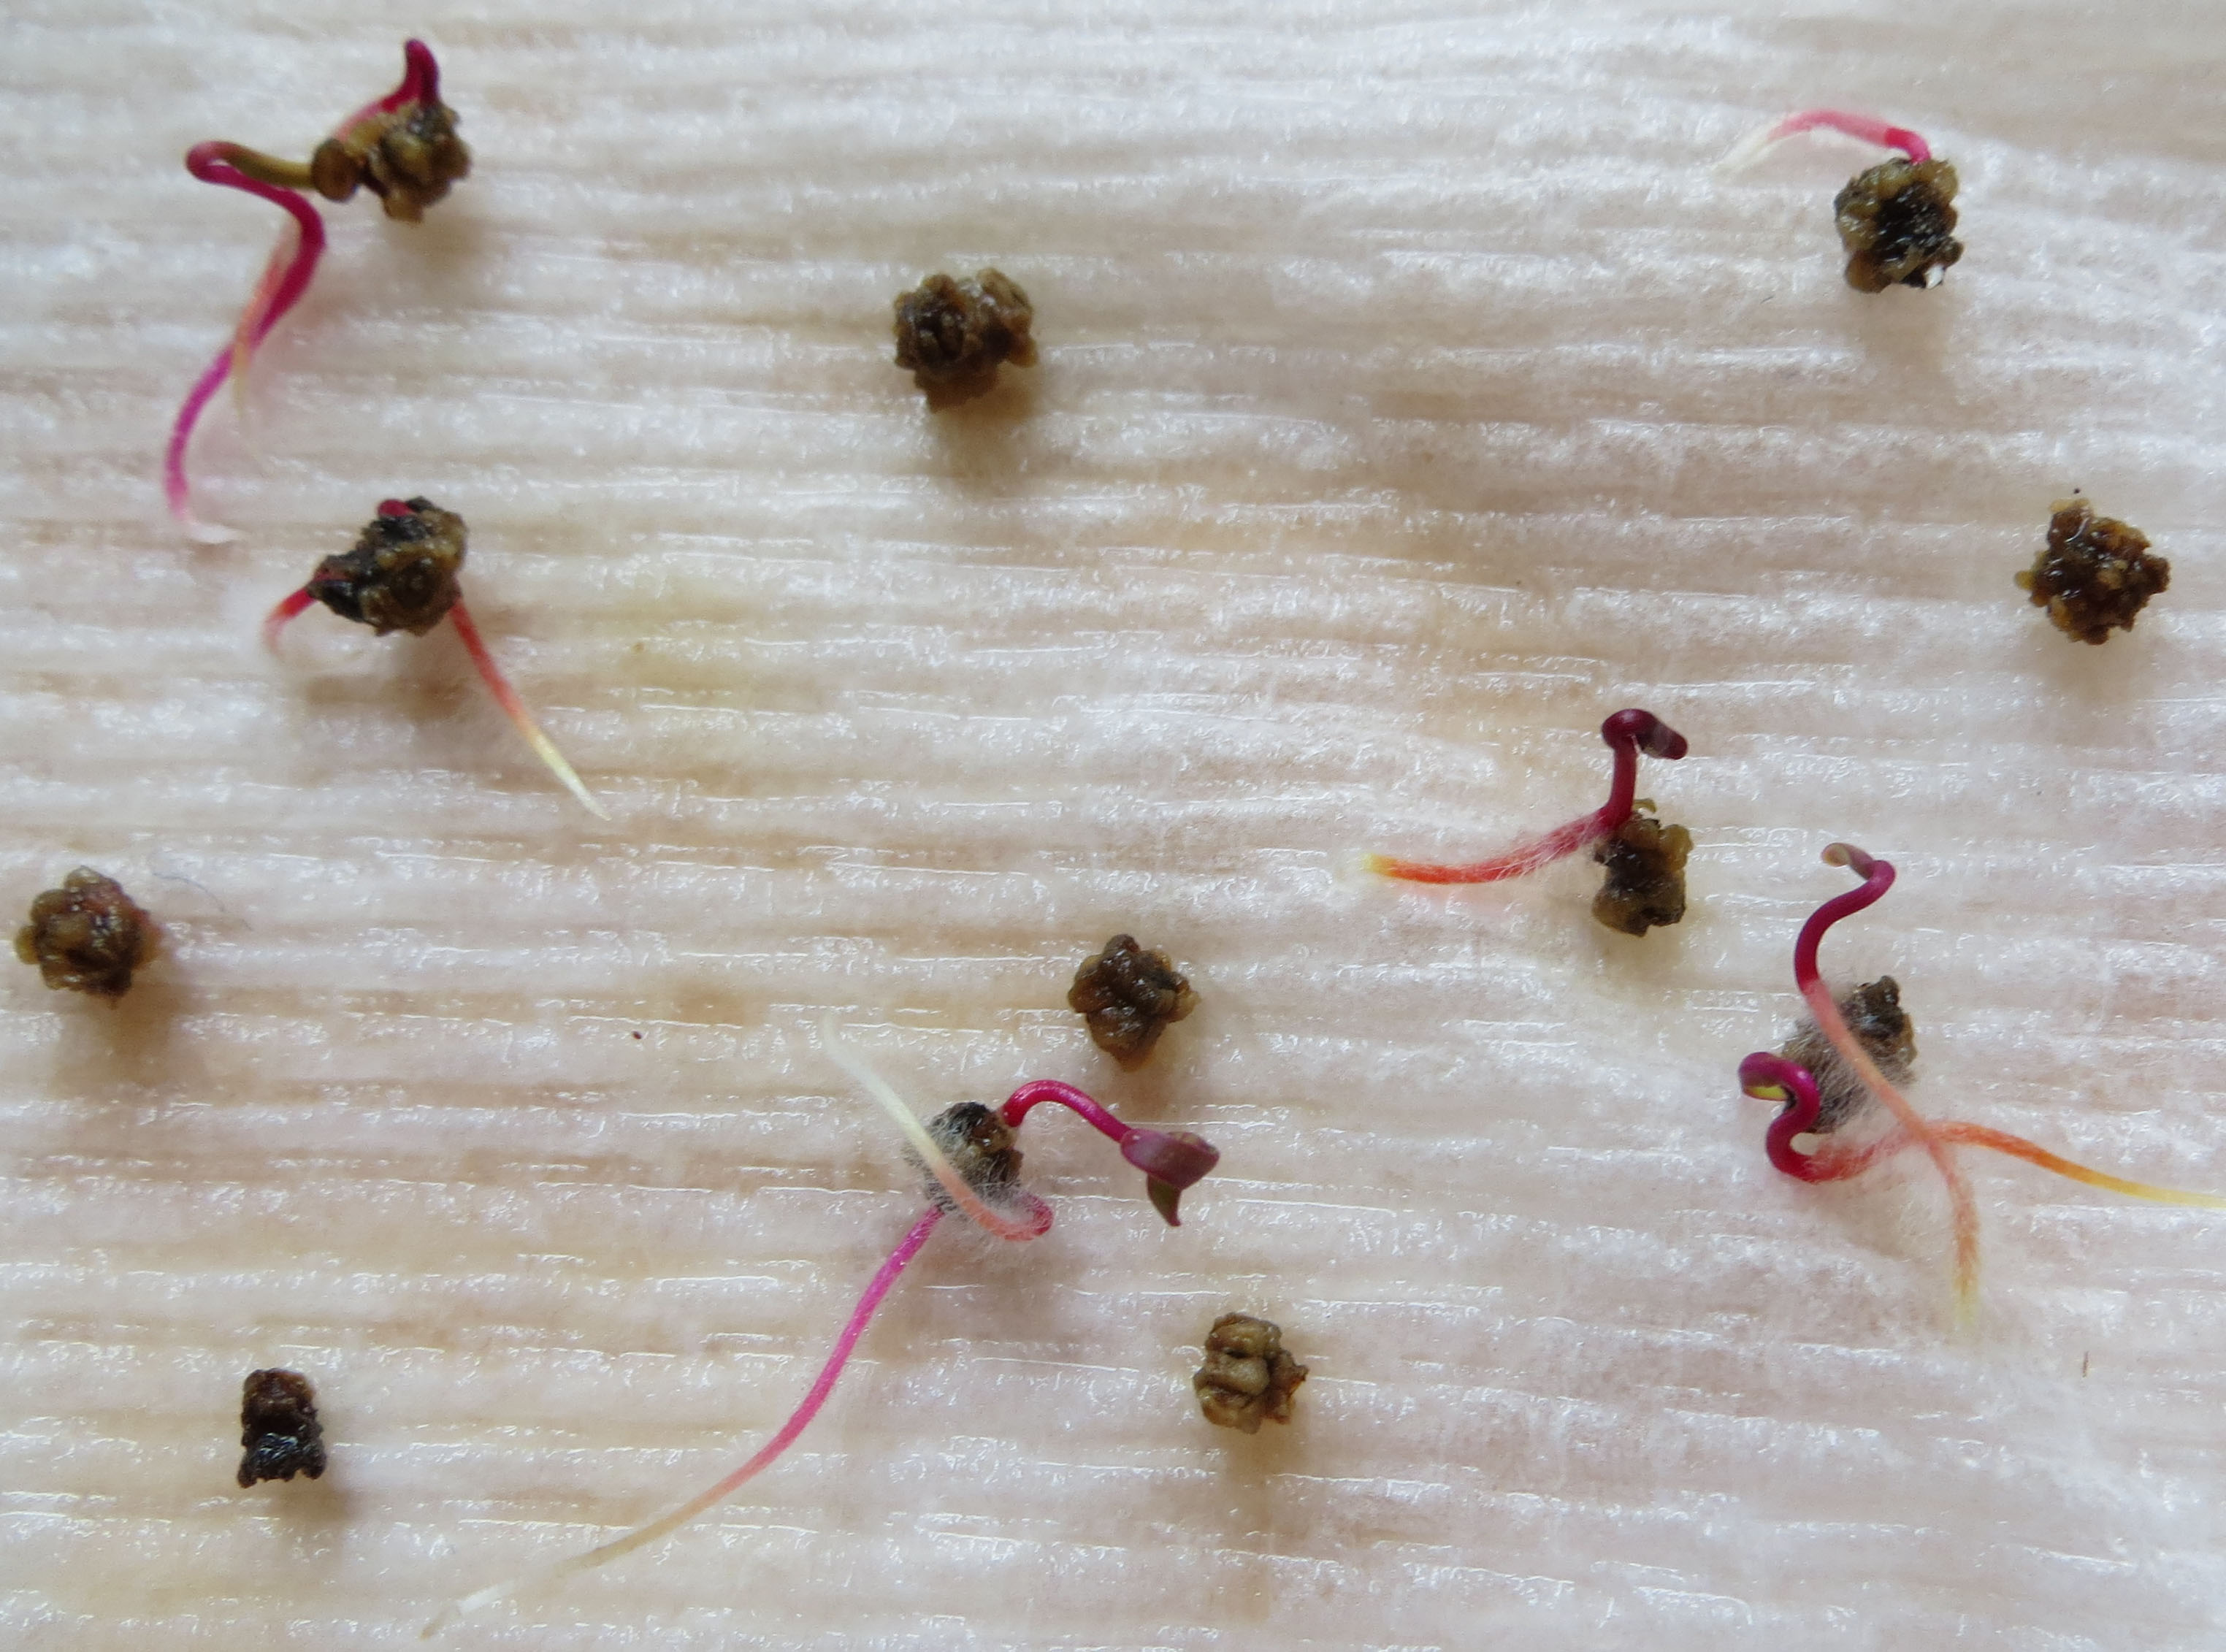 Beet seeds are clusters of seeds in a single fruit.